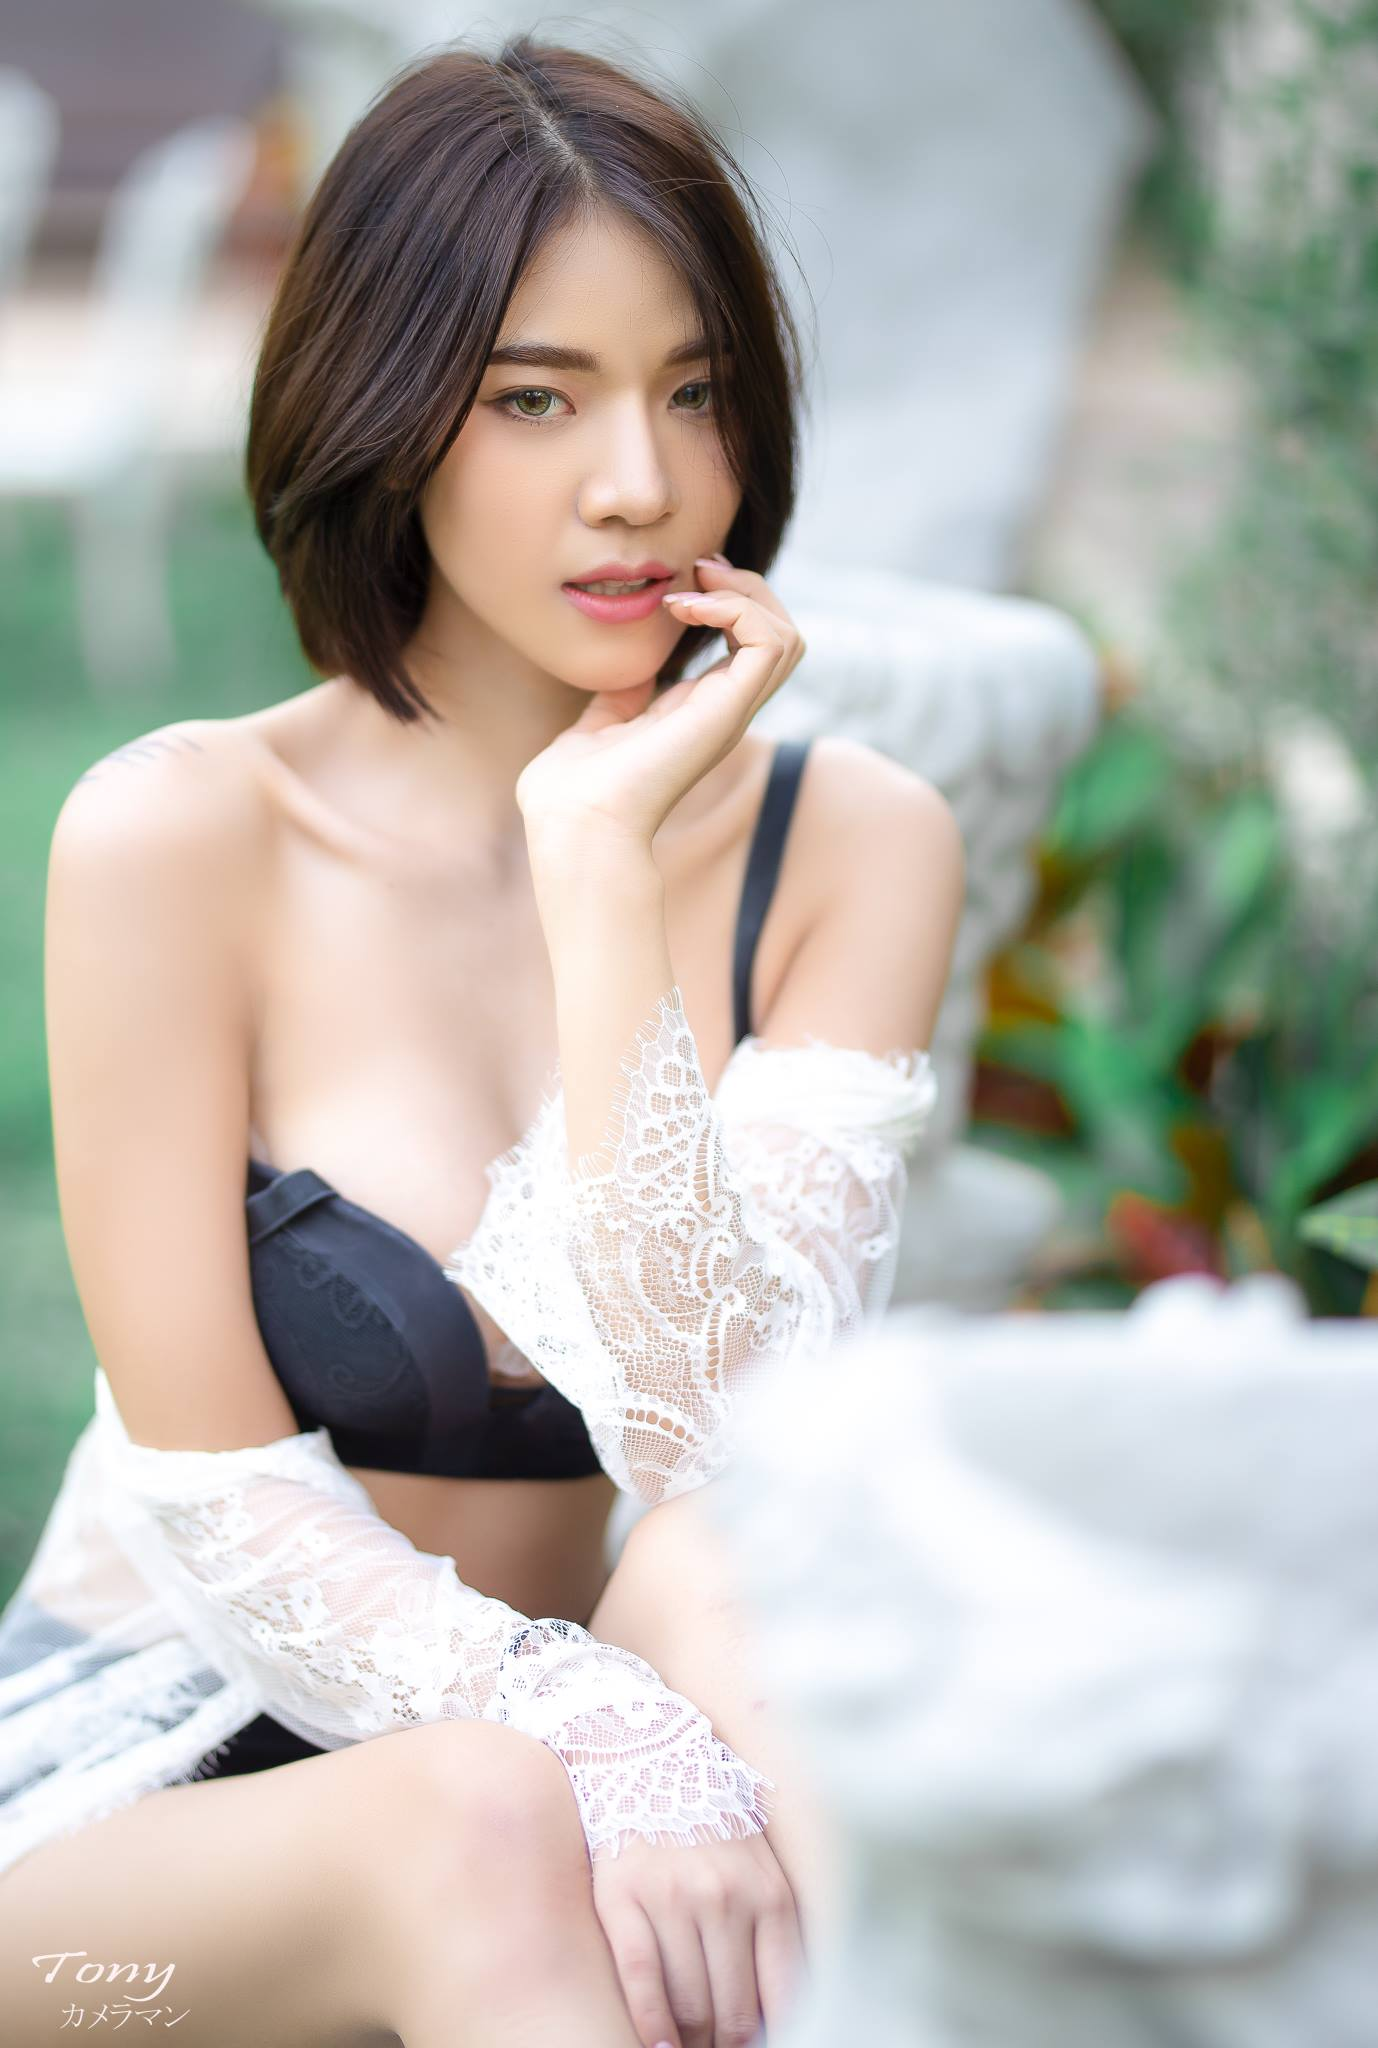 Lace and Strap - Giekao Klaorethai